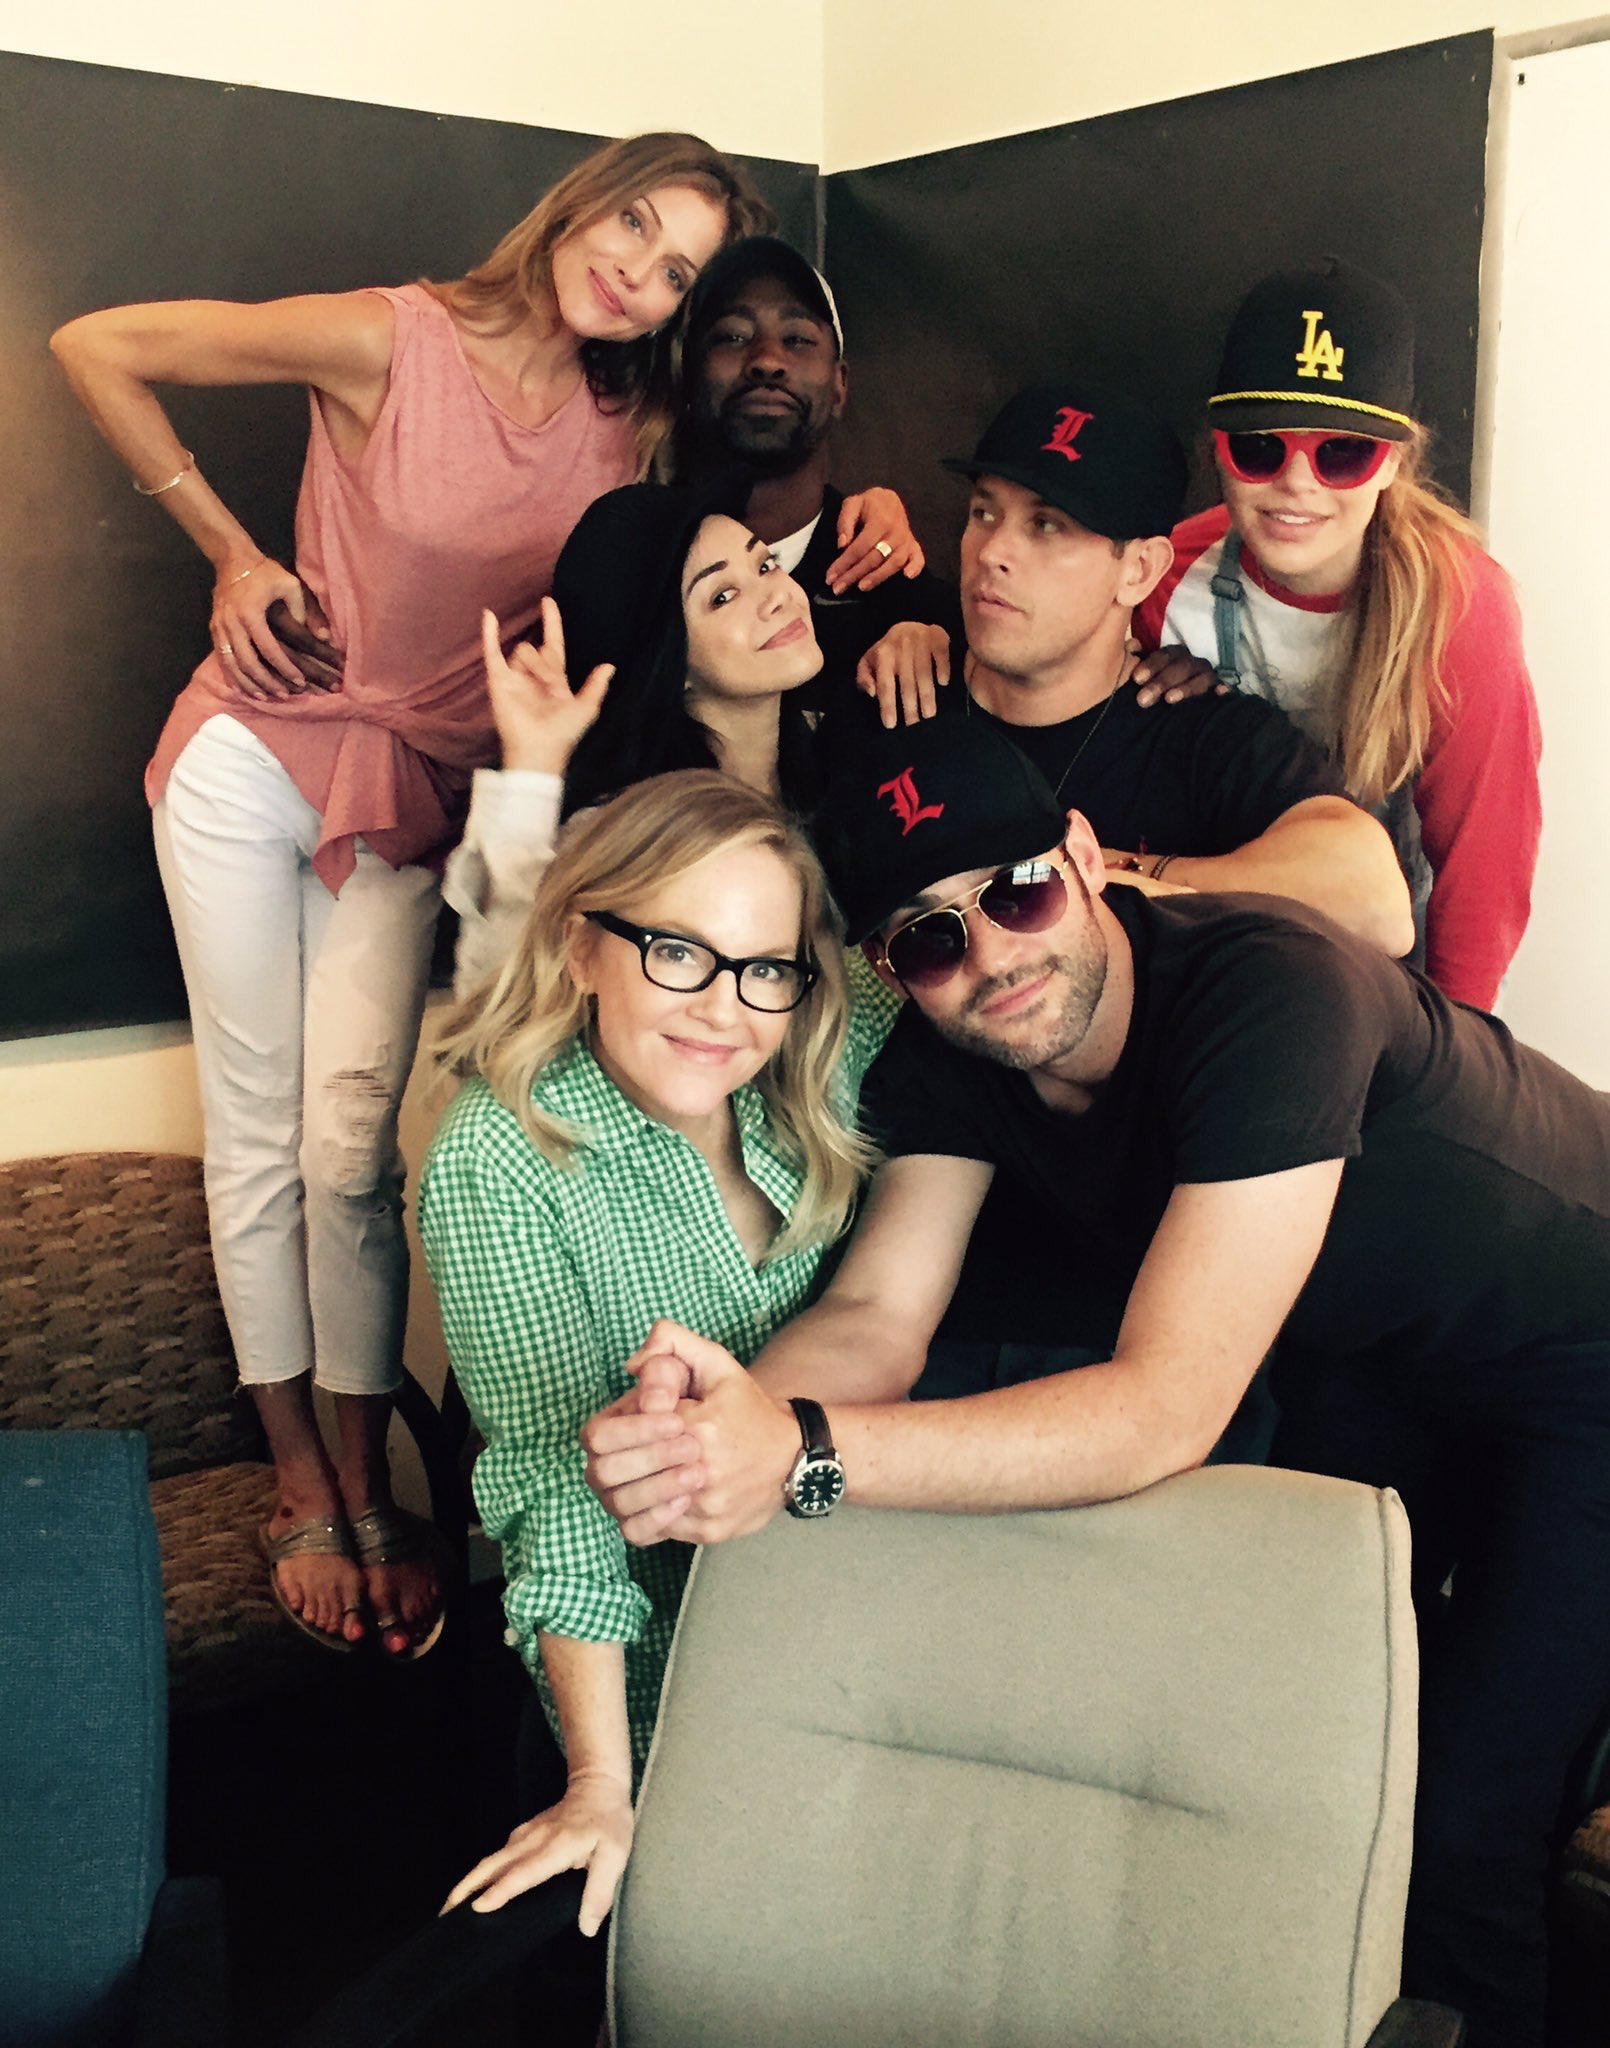 FAMILY. // The cast of Lucifer #luci